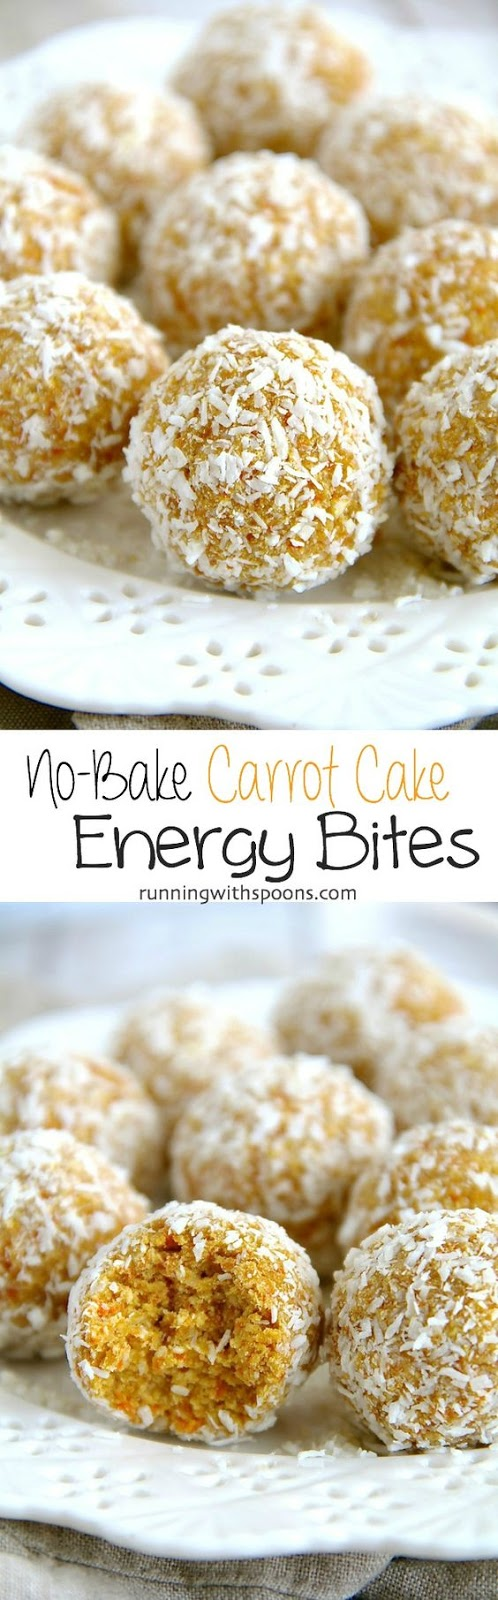 10 minutes and 1 bowl are all you need to whip up these healthy No-Bake Carrot Cake Energy Bites! They're nut-free, gluten-free, and vegan.